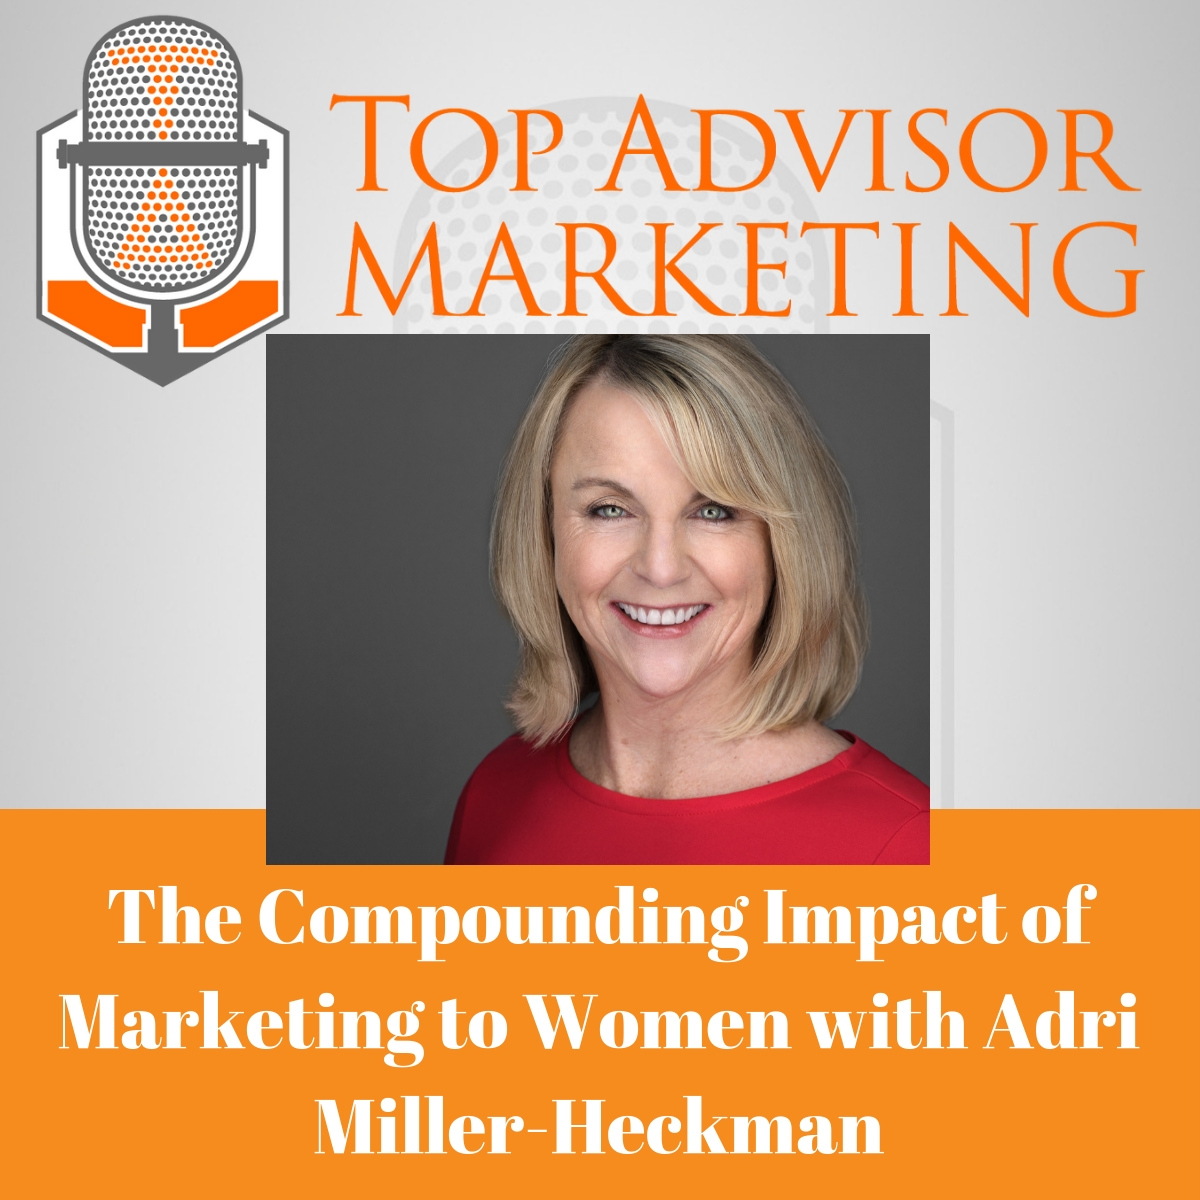 Episode 150 - Part 3 of The Compounding Impact of Marketing to Women with Podcasts: How to Maximize Your ROI Featuring Adri Miller-Heckman